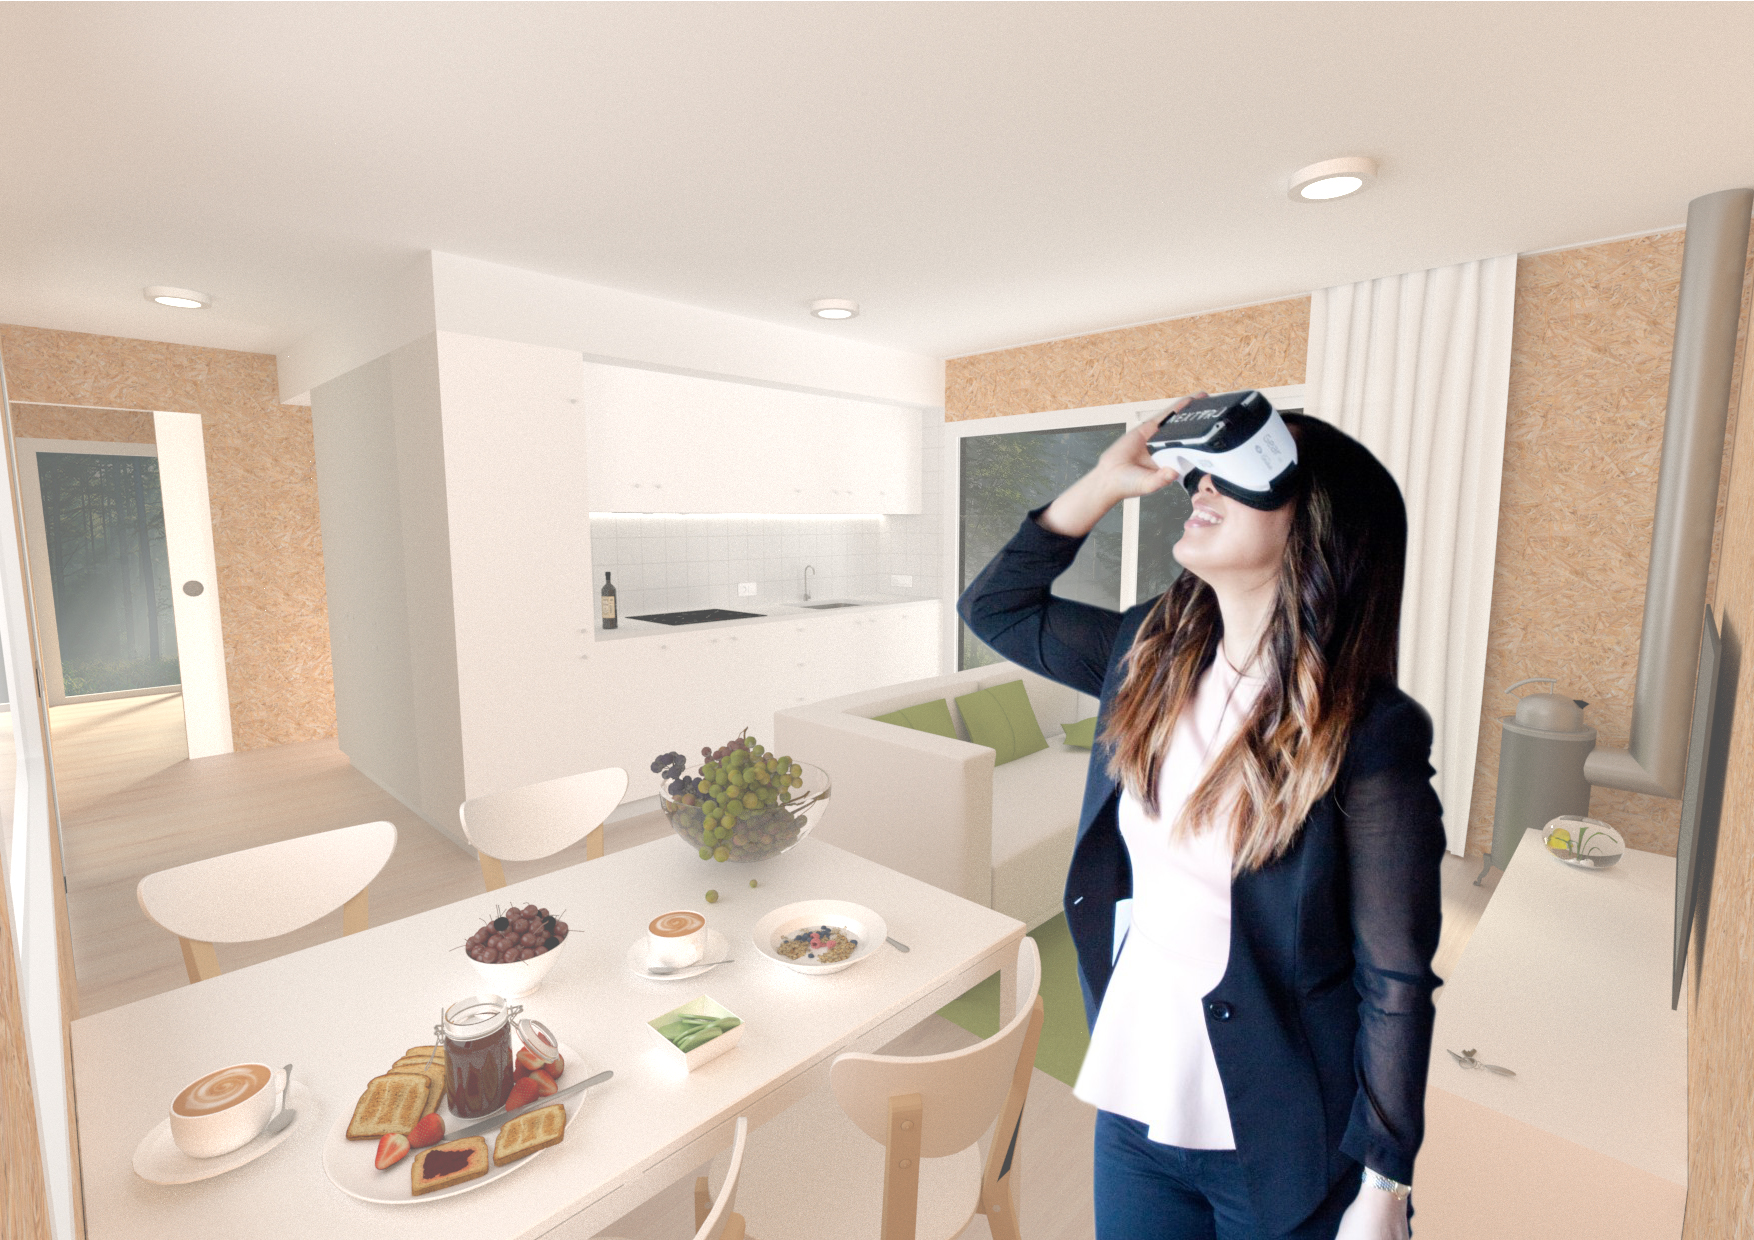 Virtual and Augmented Reality price in Barcelona